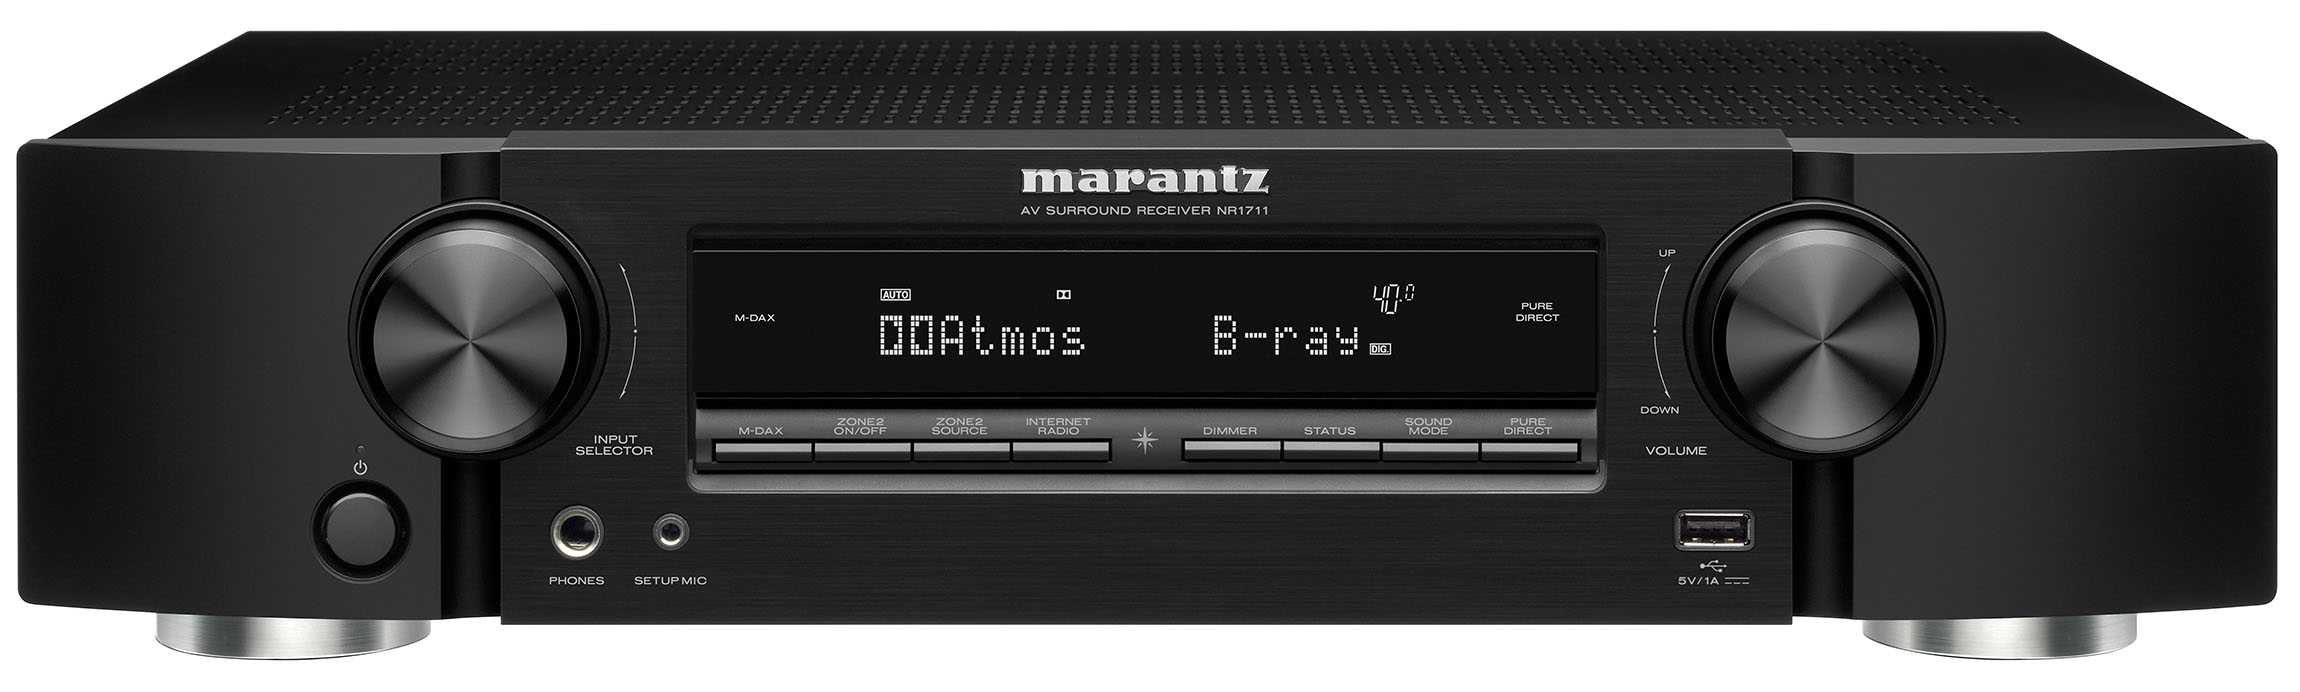 Marantz NR1711 AVR home theater reciever